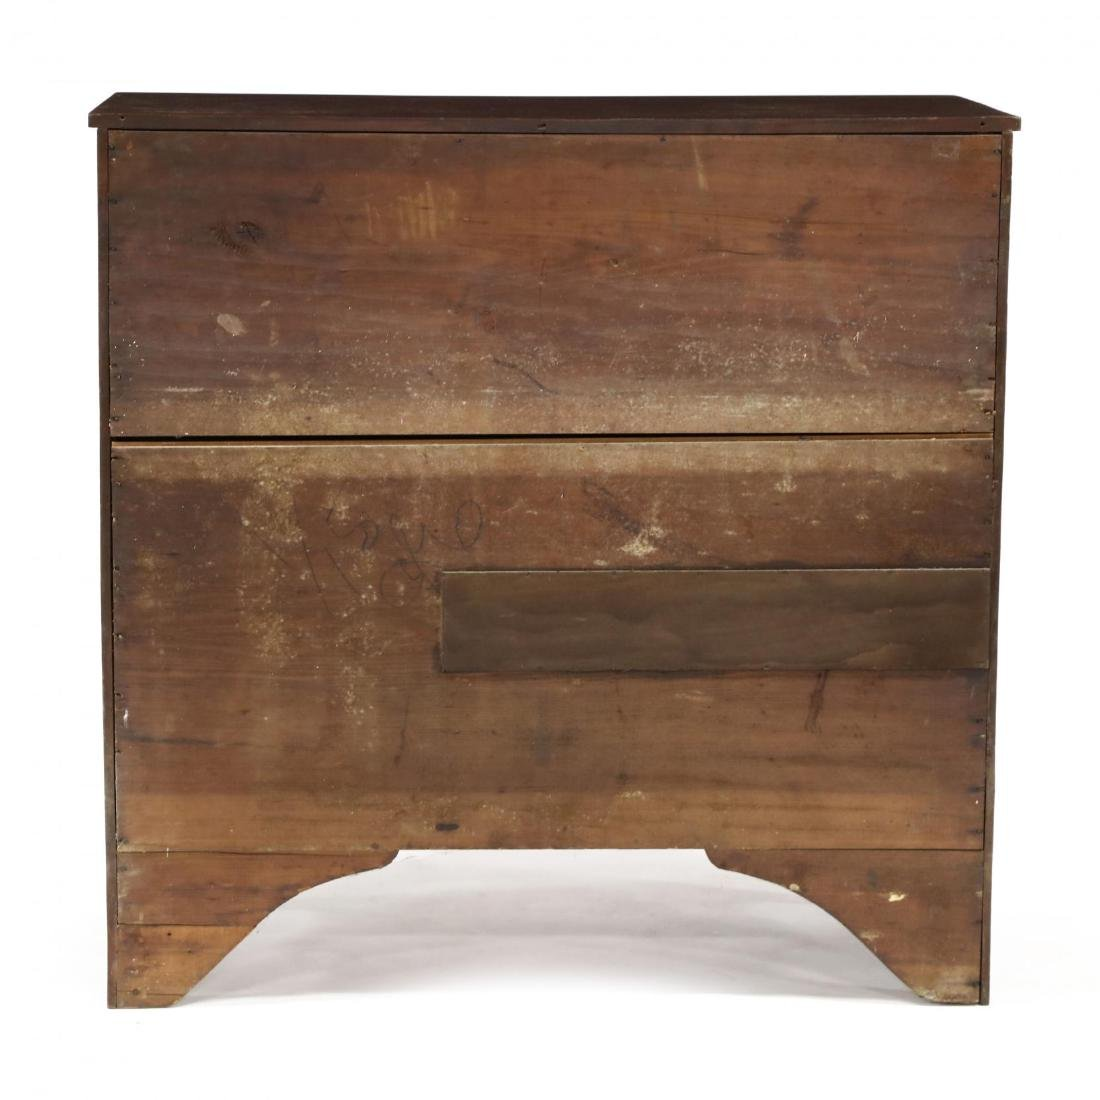 Late Federal Cherry Butler's Chest of Drawers - 7